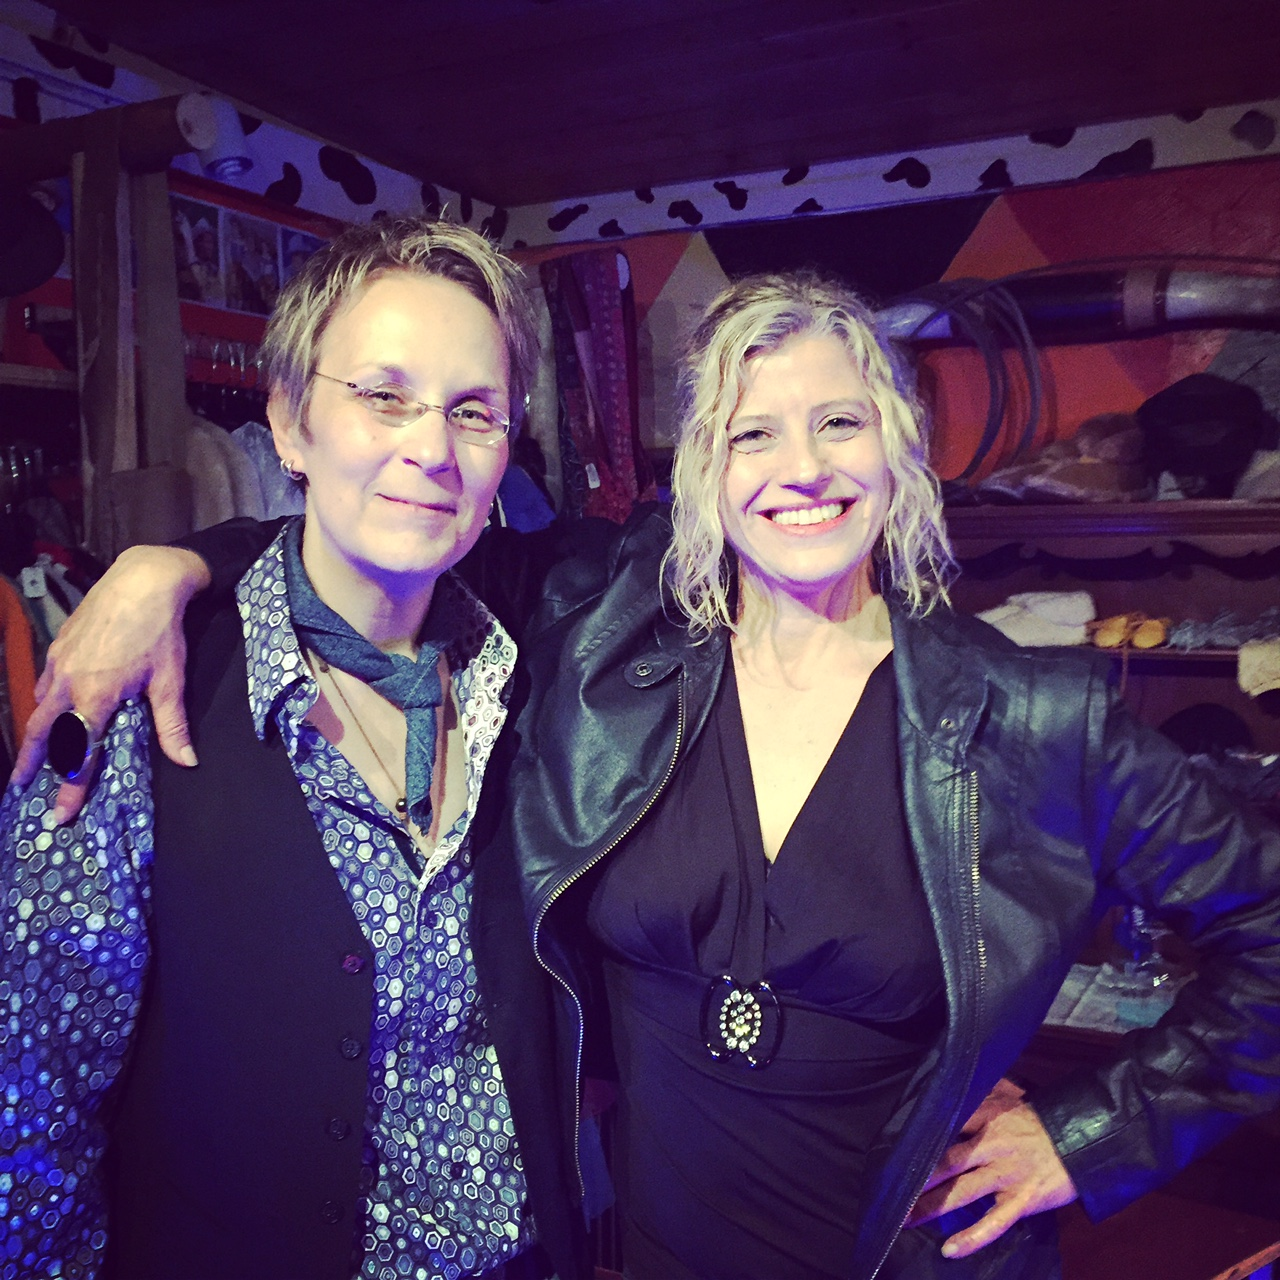 American troubadour, truth-telling singer-songwriter Mary Gauthier and me. February 2015. Hillbilly Hip. Topanga, CA